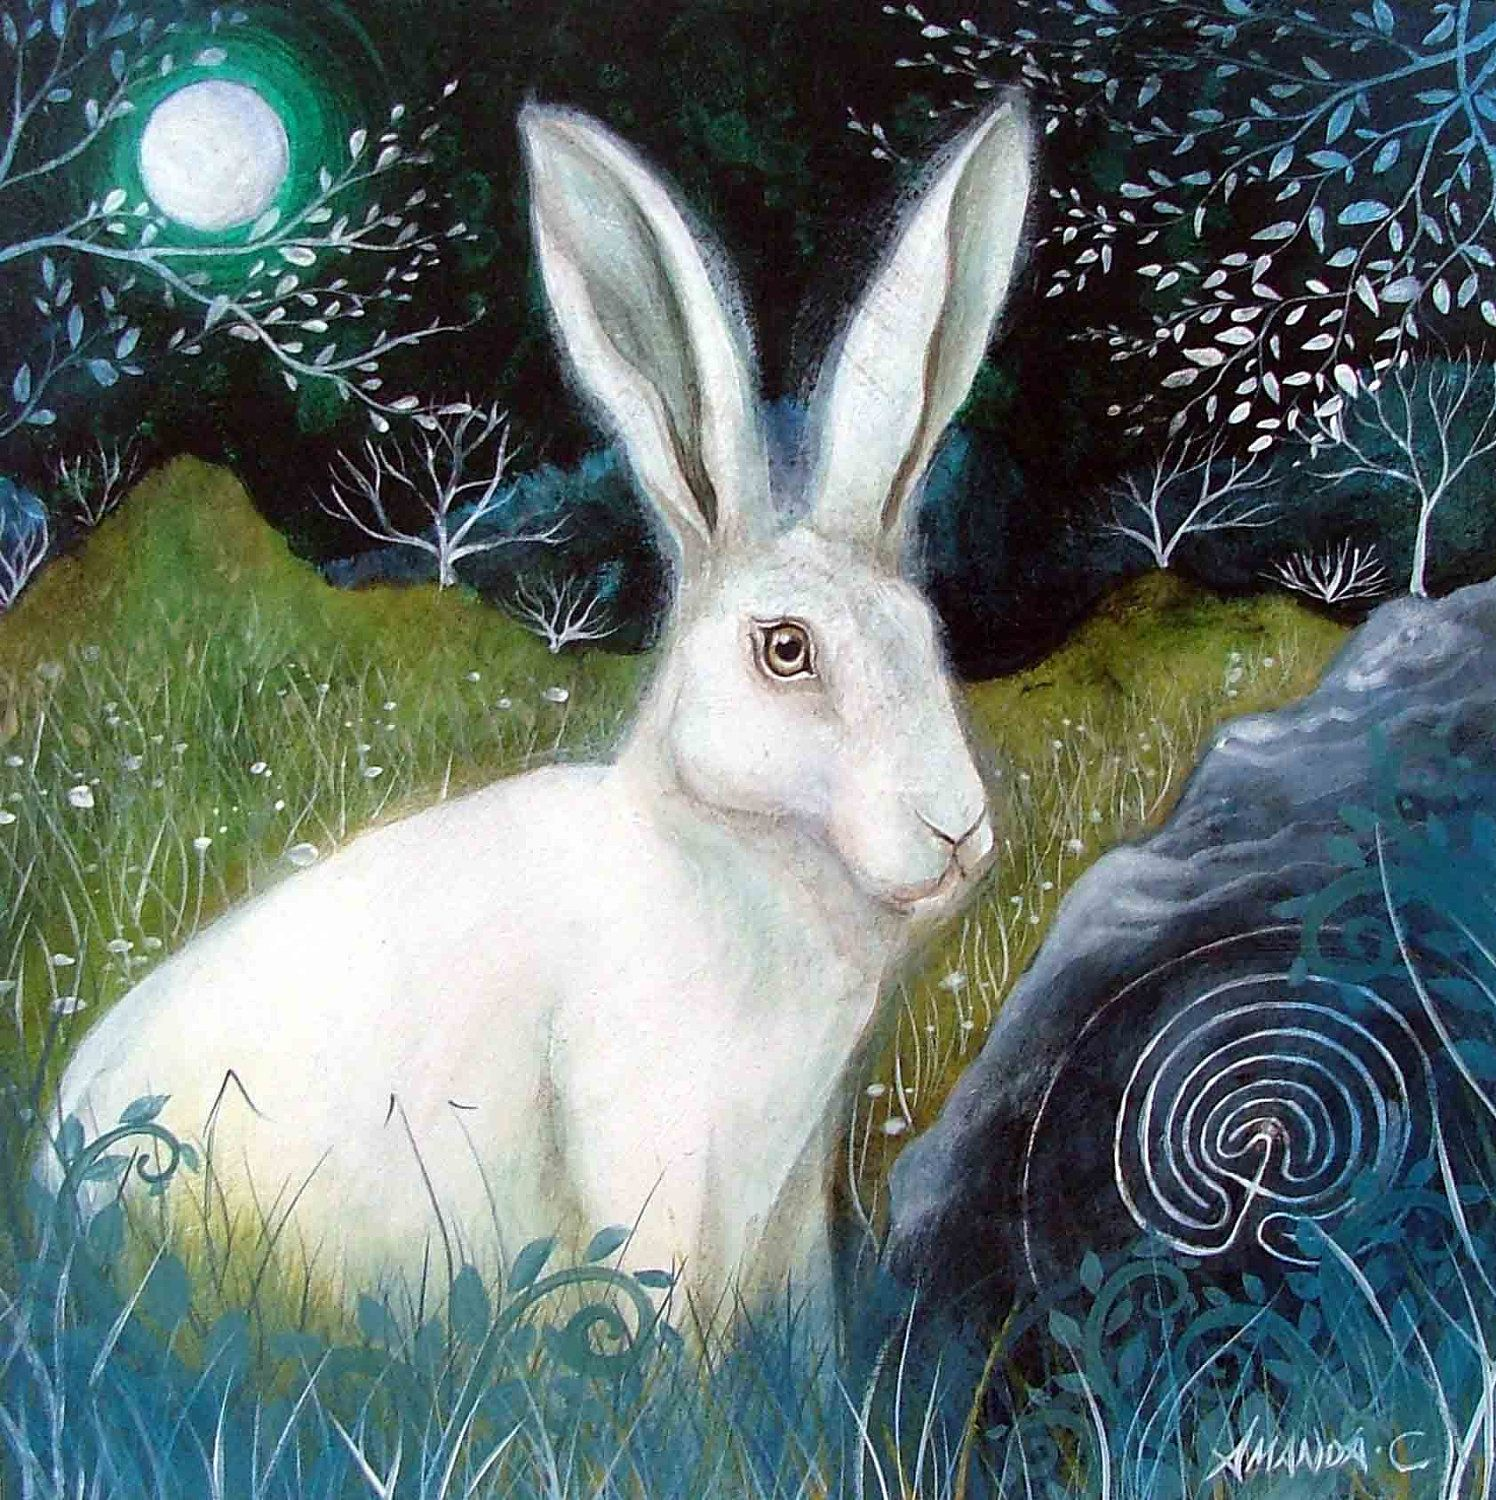 'Trackways'' from an original painting by Amanda Clark